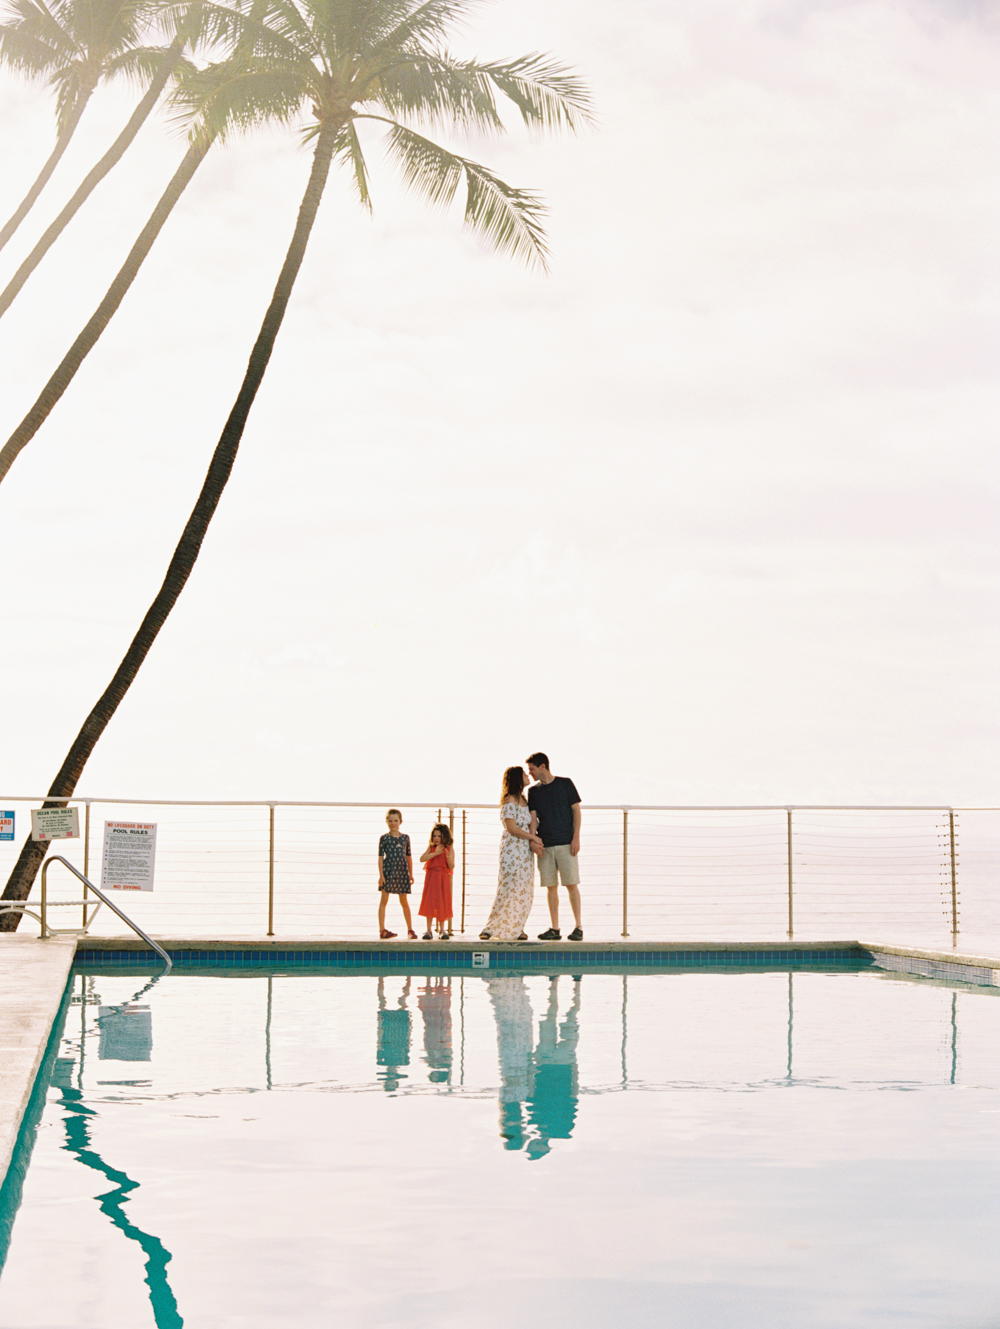 family photo at pool in Puamana by Maui photographer Wendy Laurel